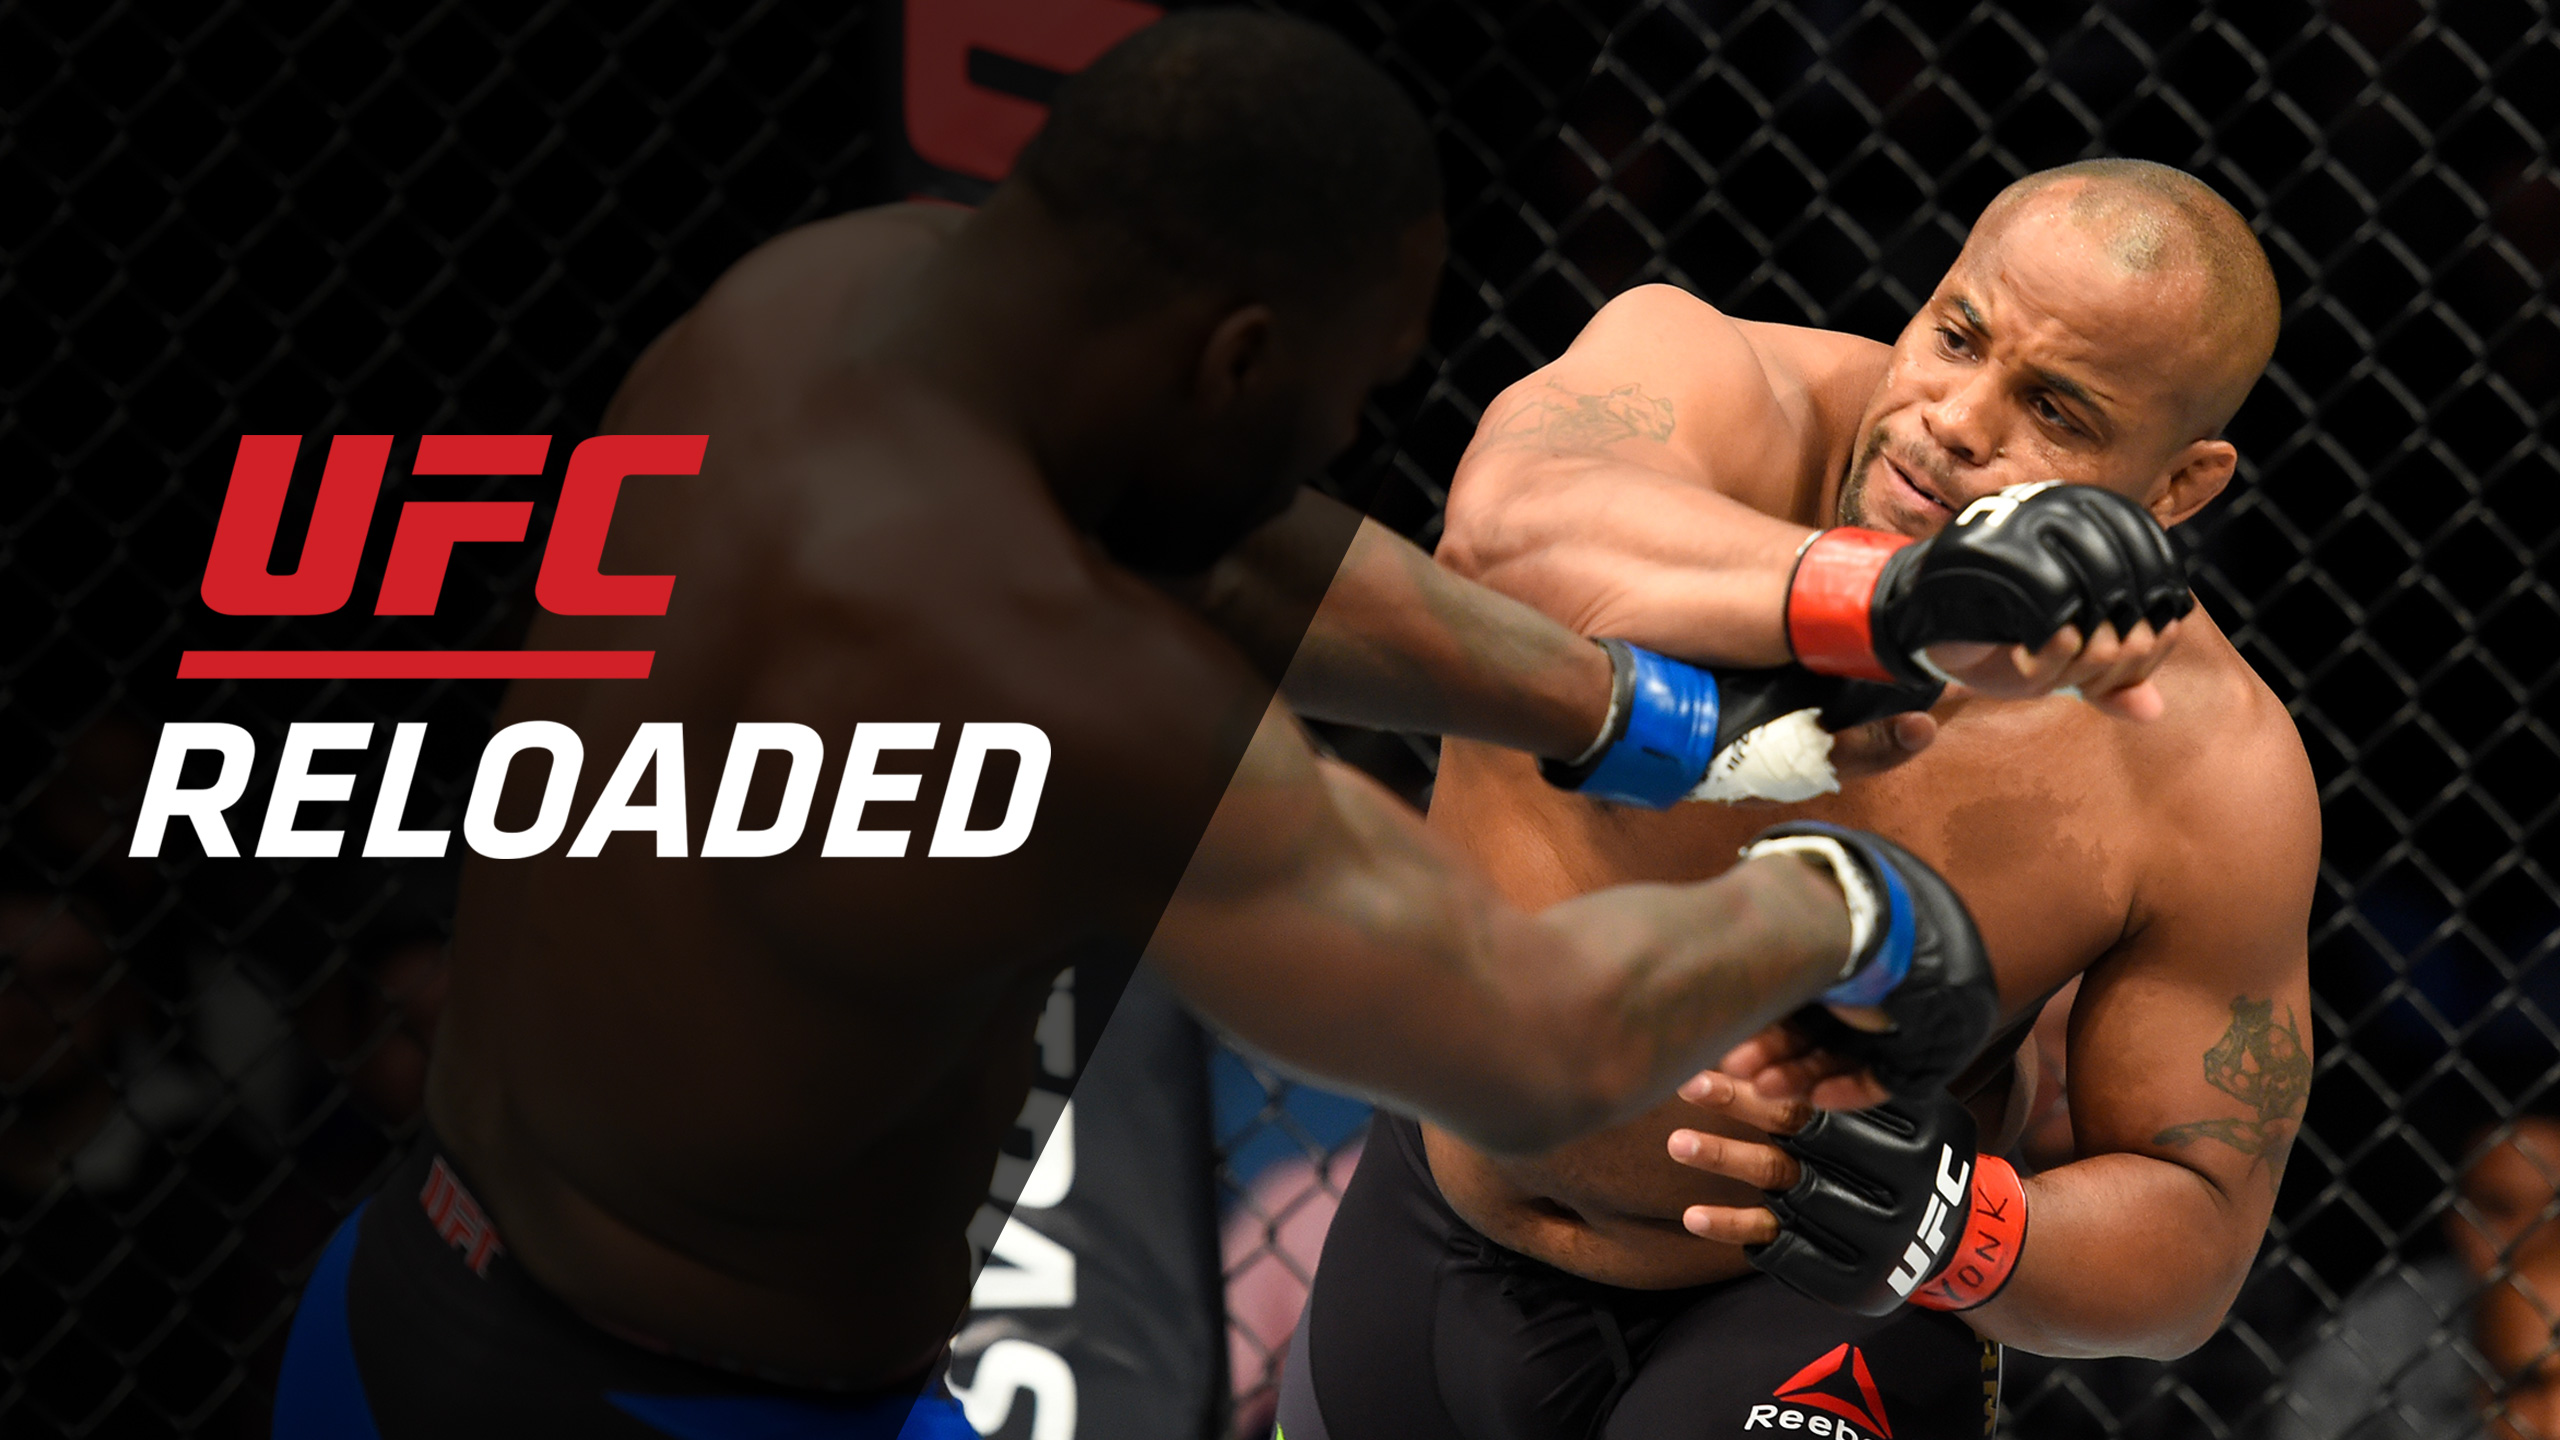 UFC Reloaded: 210: Cormier vs. Johnson 2